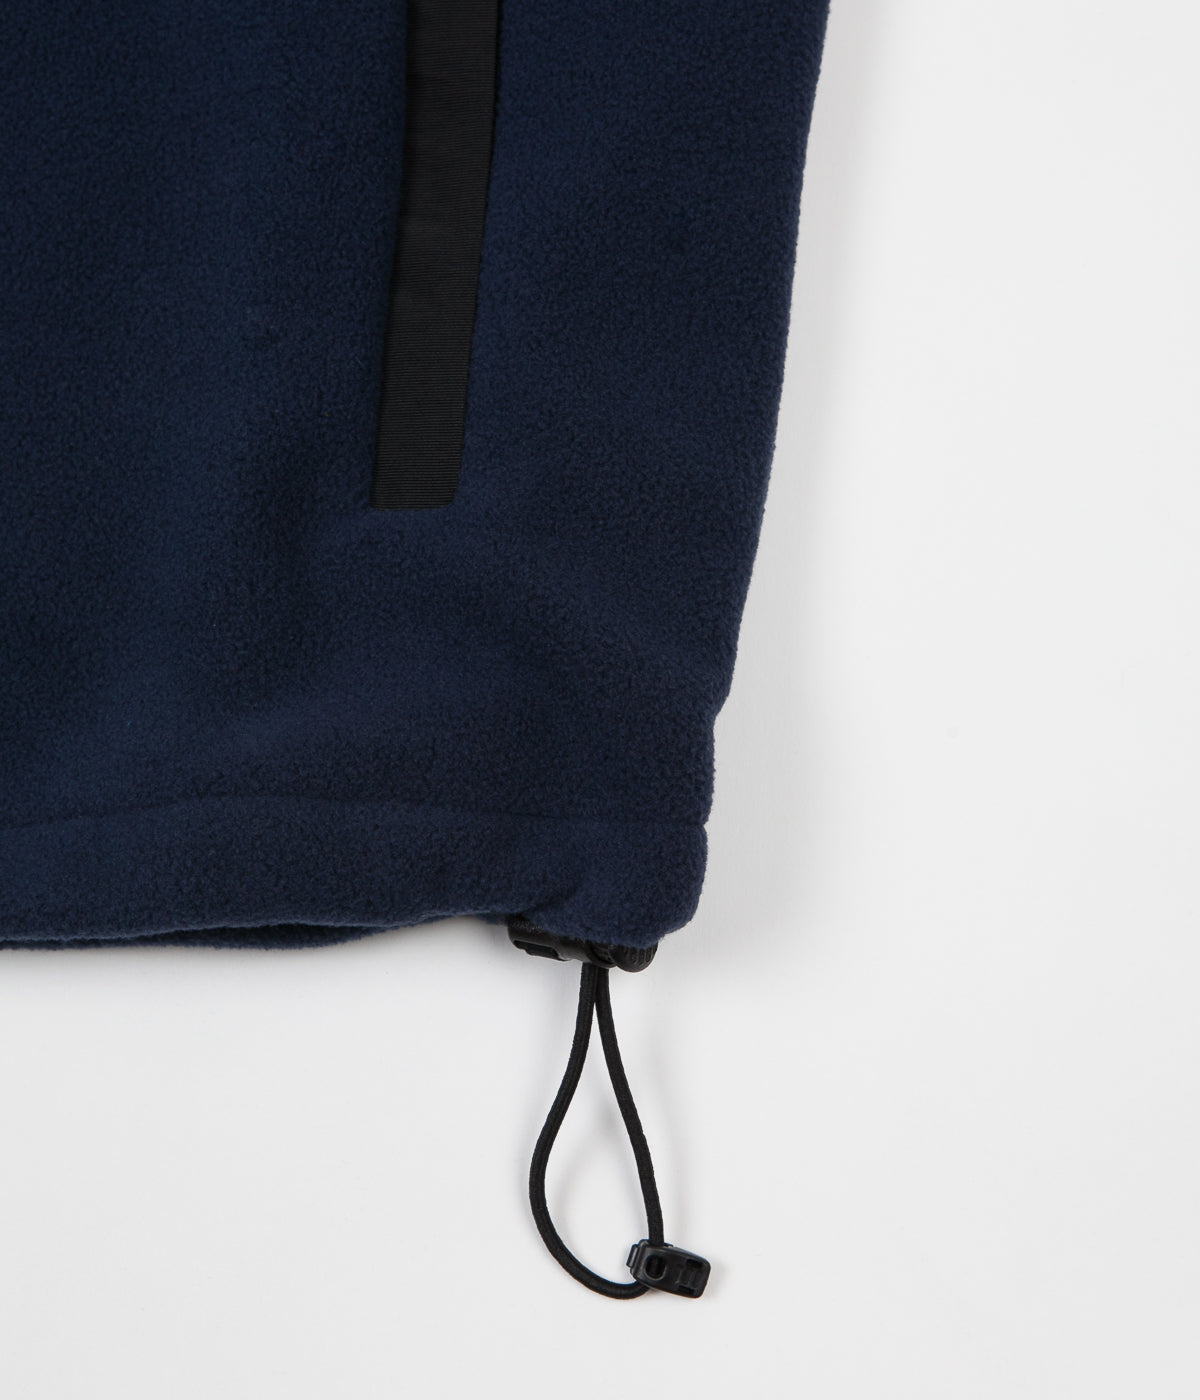 Polar Halberg Fleece Vest - Black / Obsidian Blue